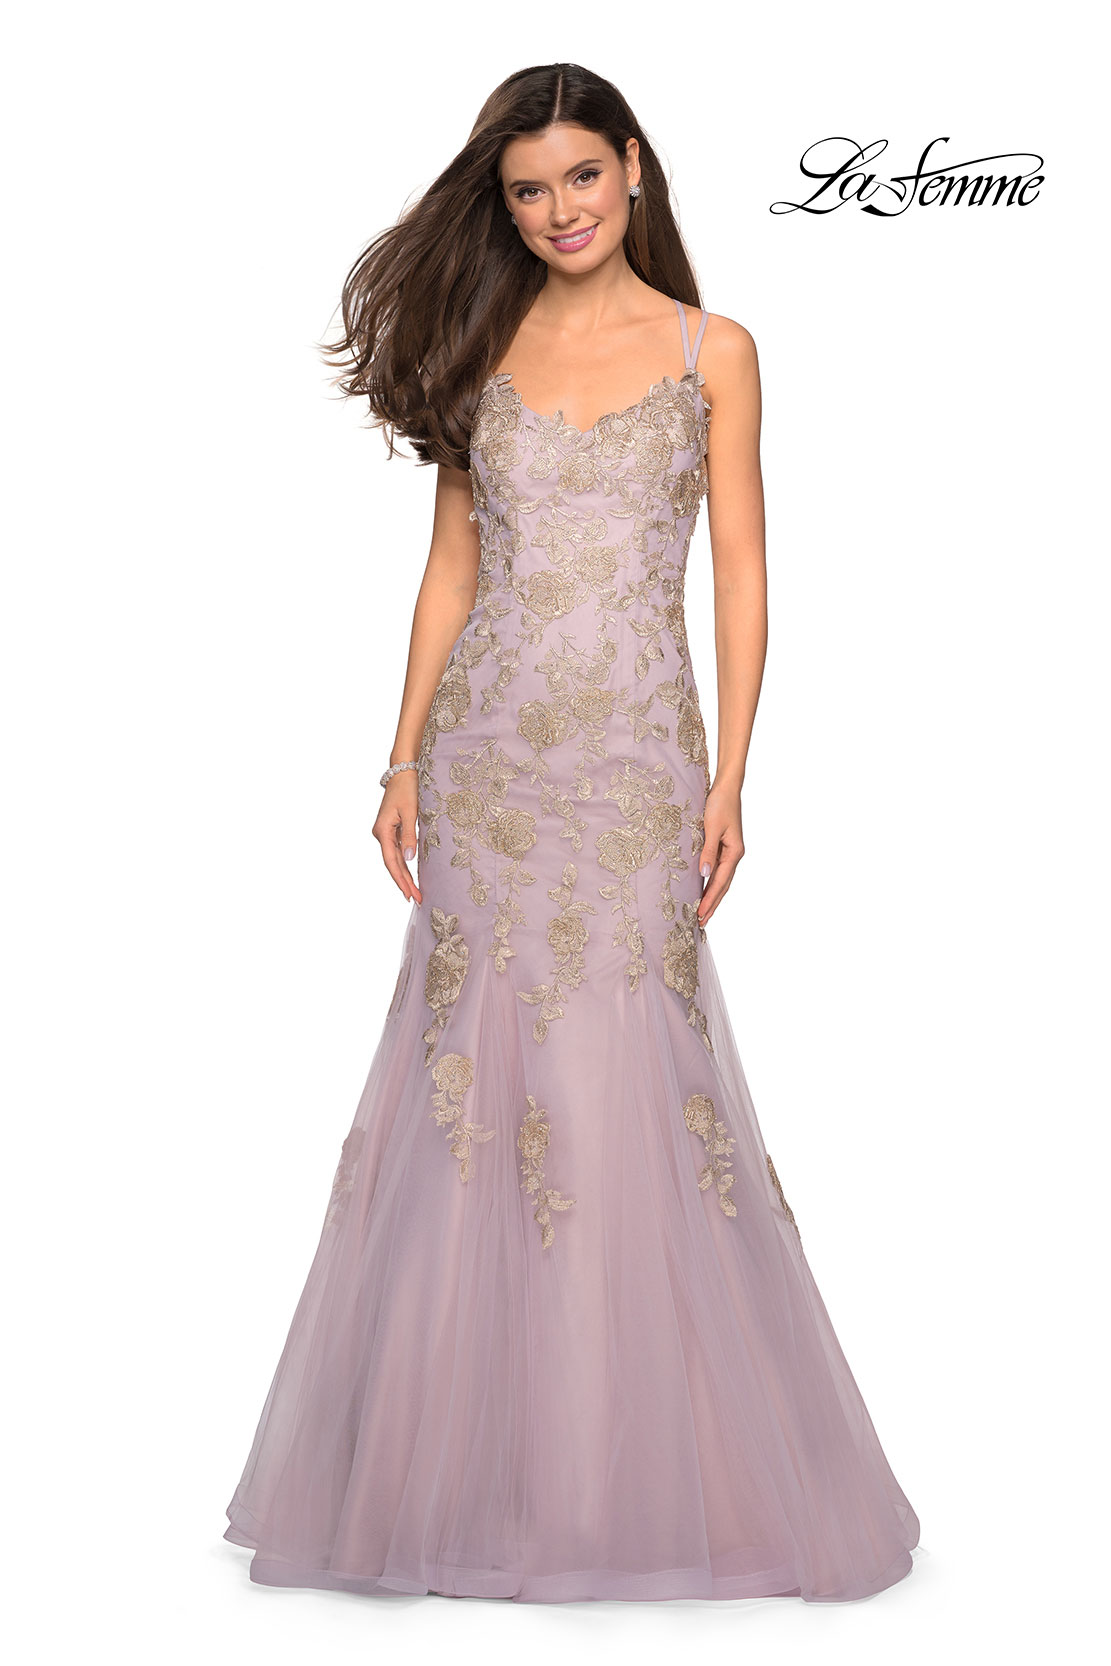 4be19abbc4286 ... Prom dresses; La Femme 27710. Picture of: Mermaid Tulle Prom Dress with  Floral Appliques, Style: 27710, Main